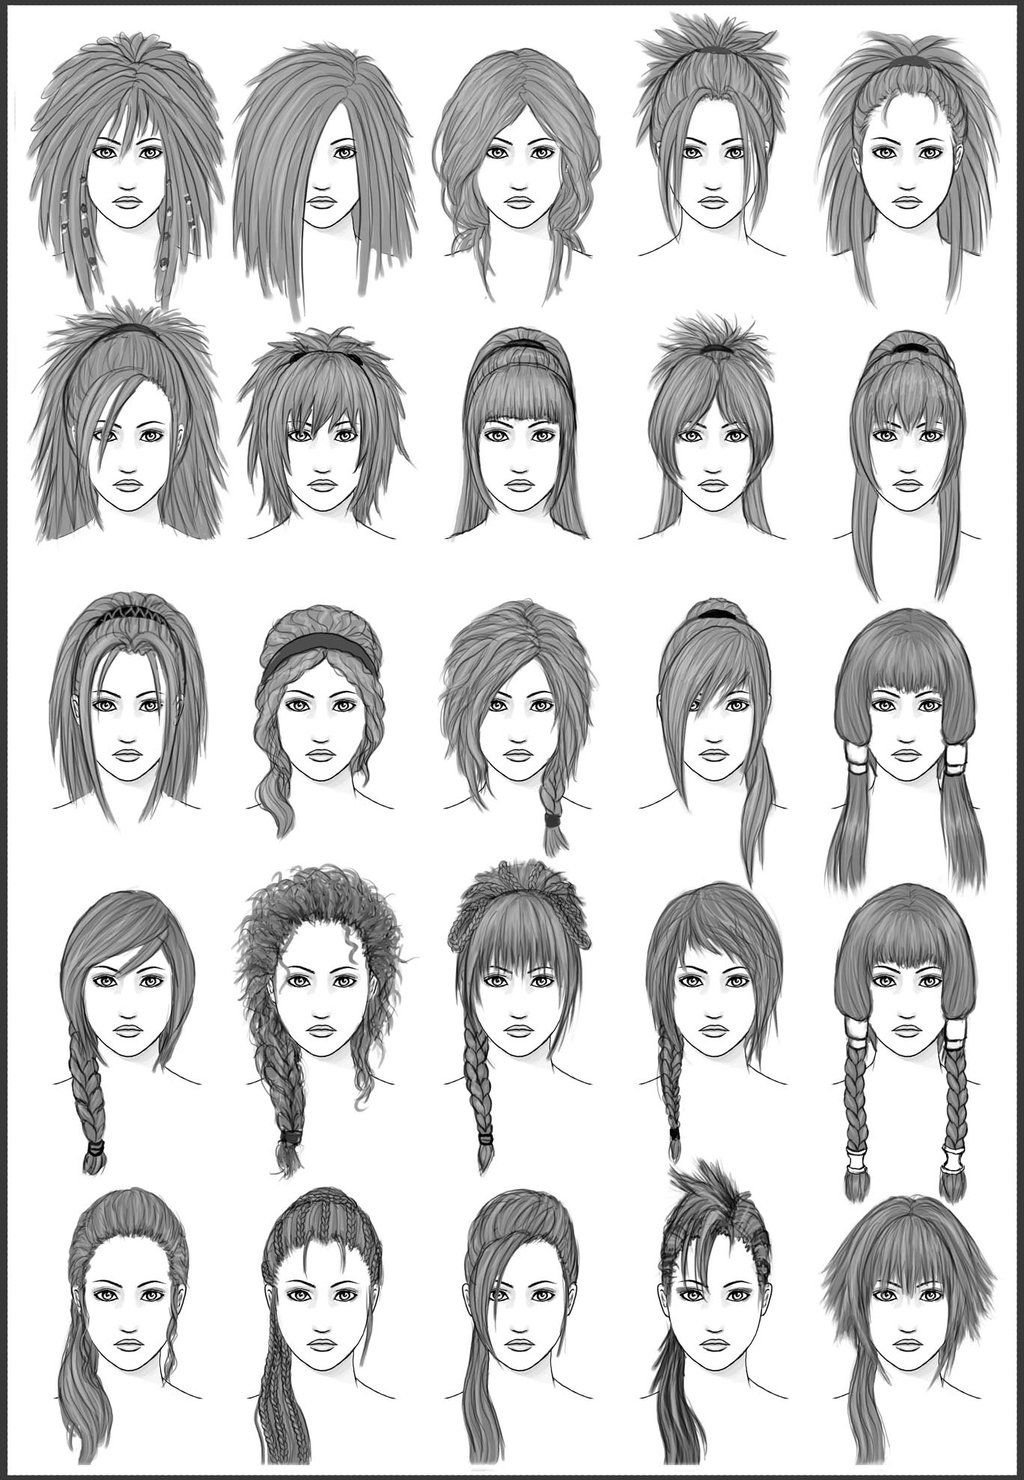 women's hair - set 3